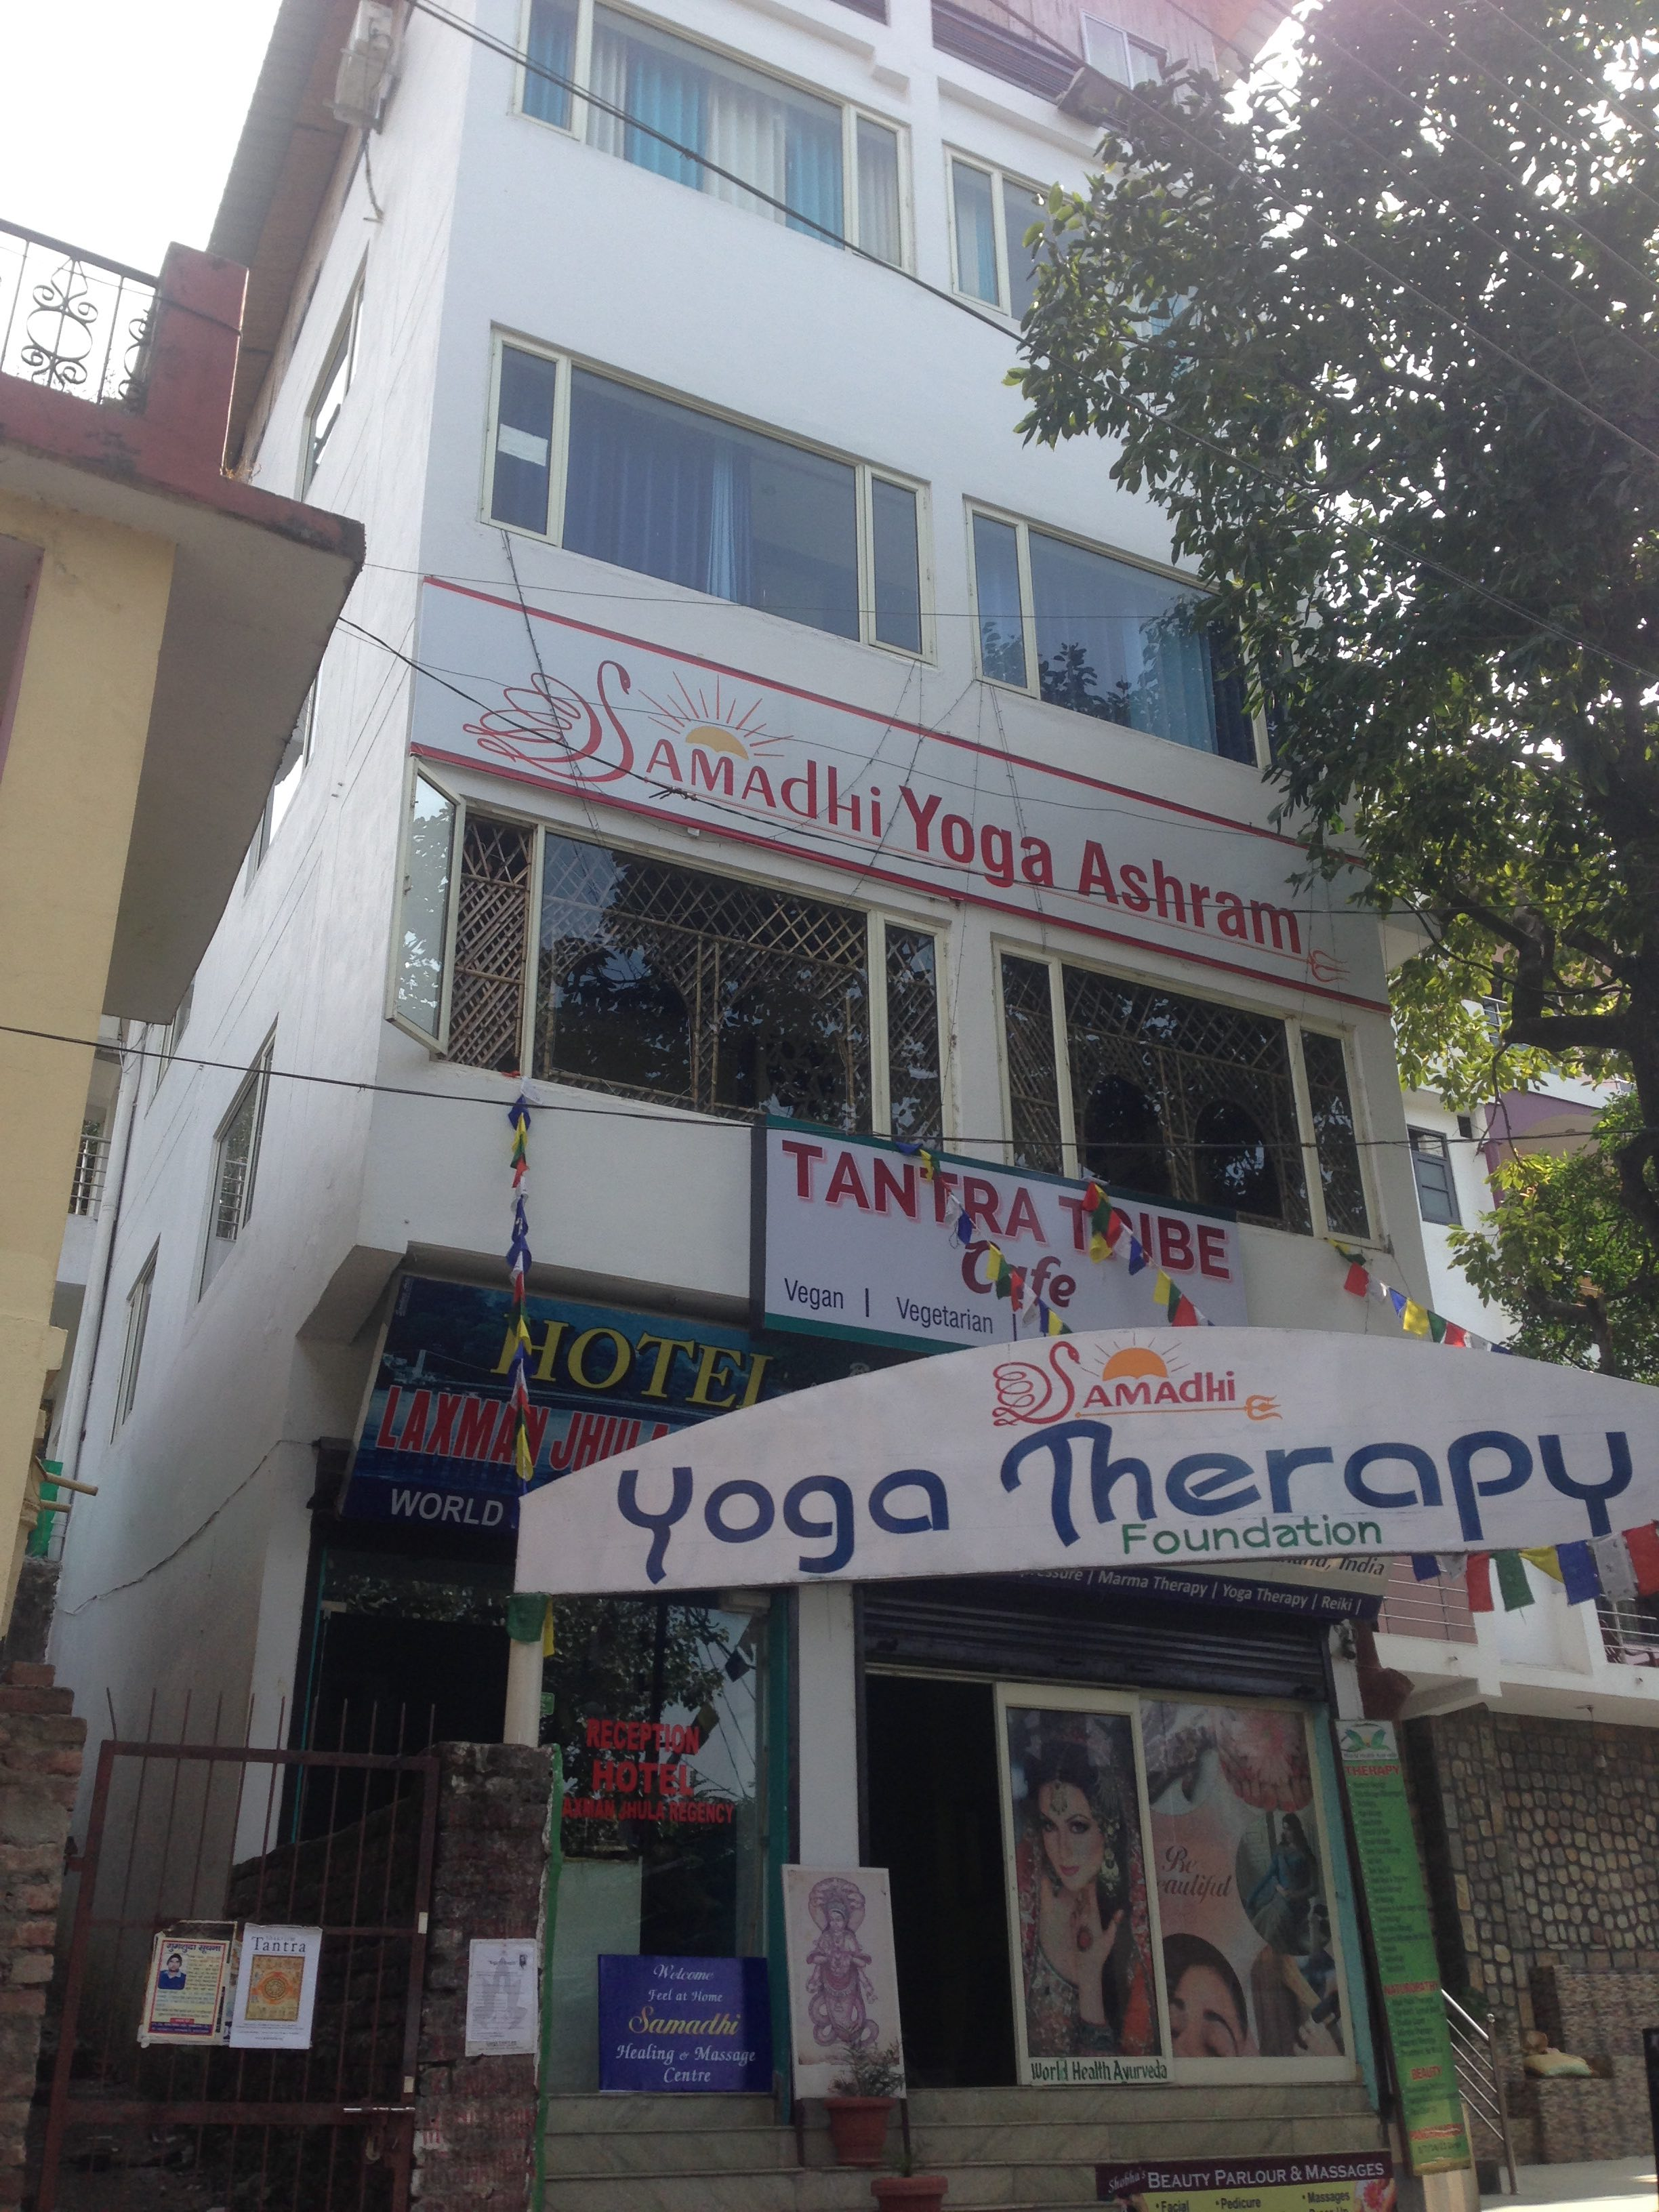 Yoga ashram in Rishikesh, India